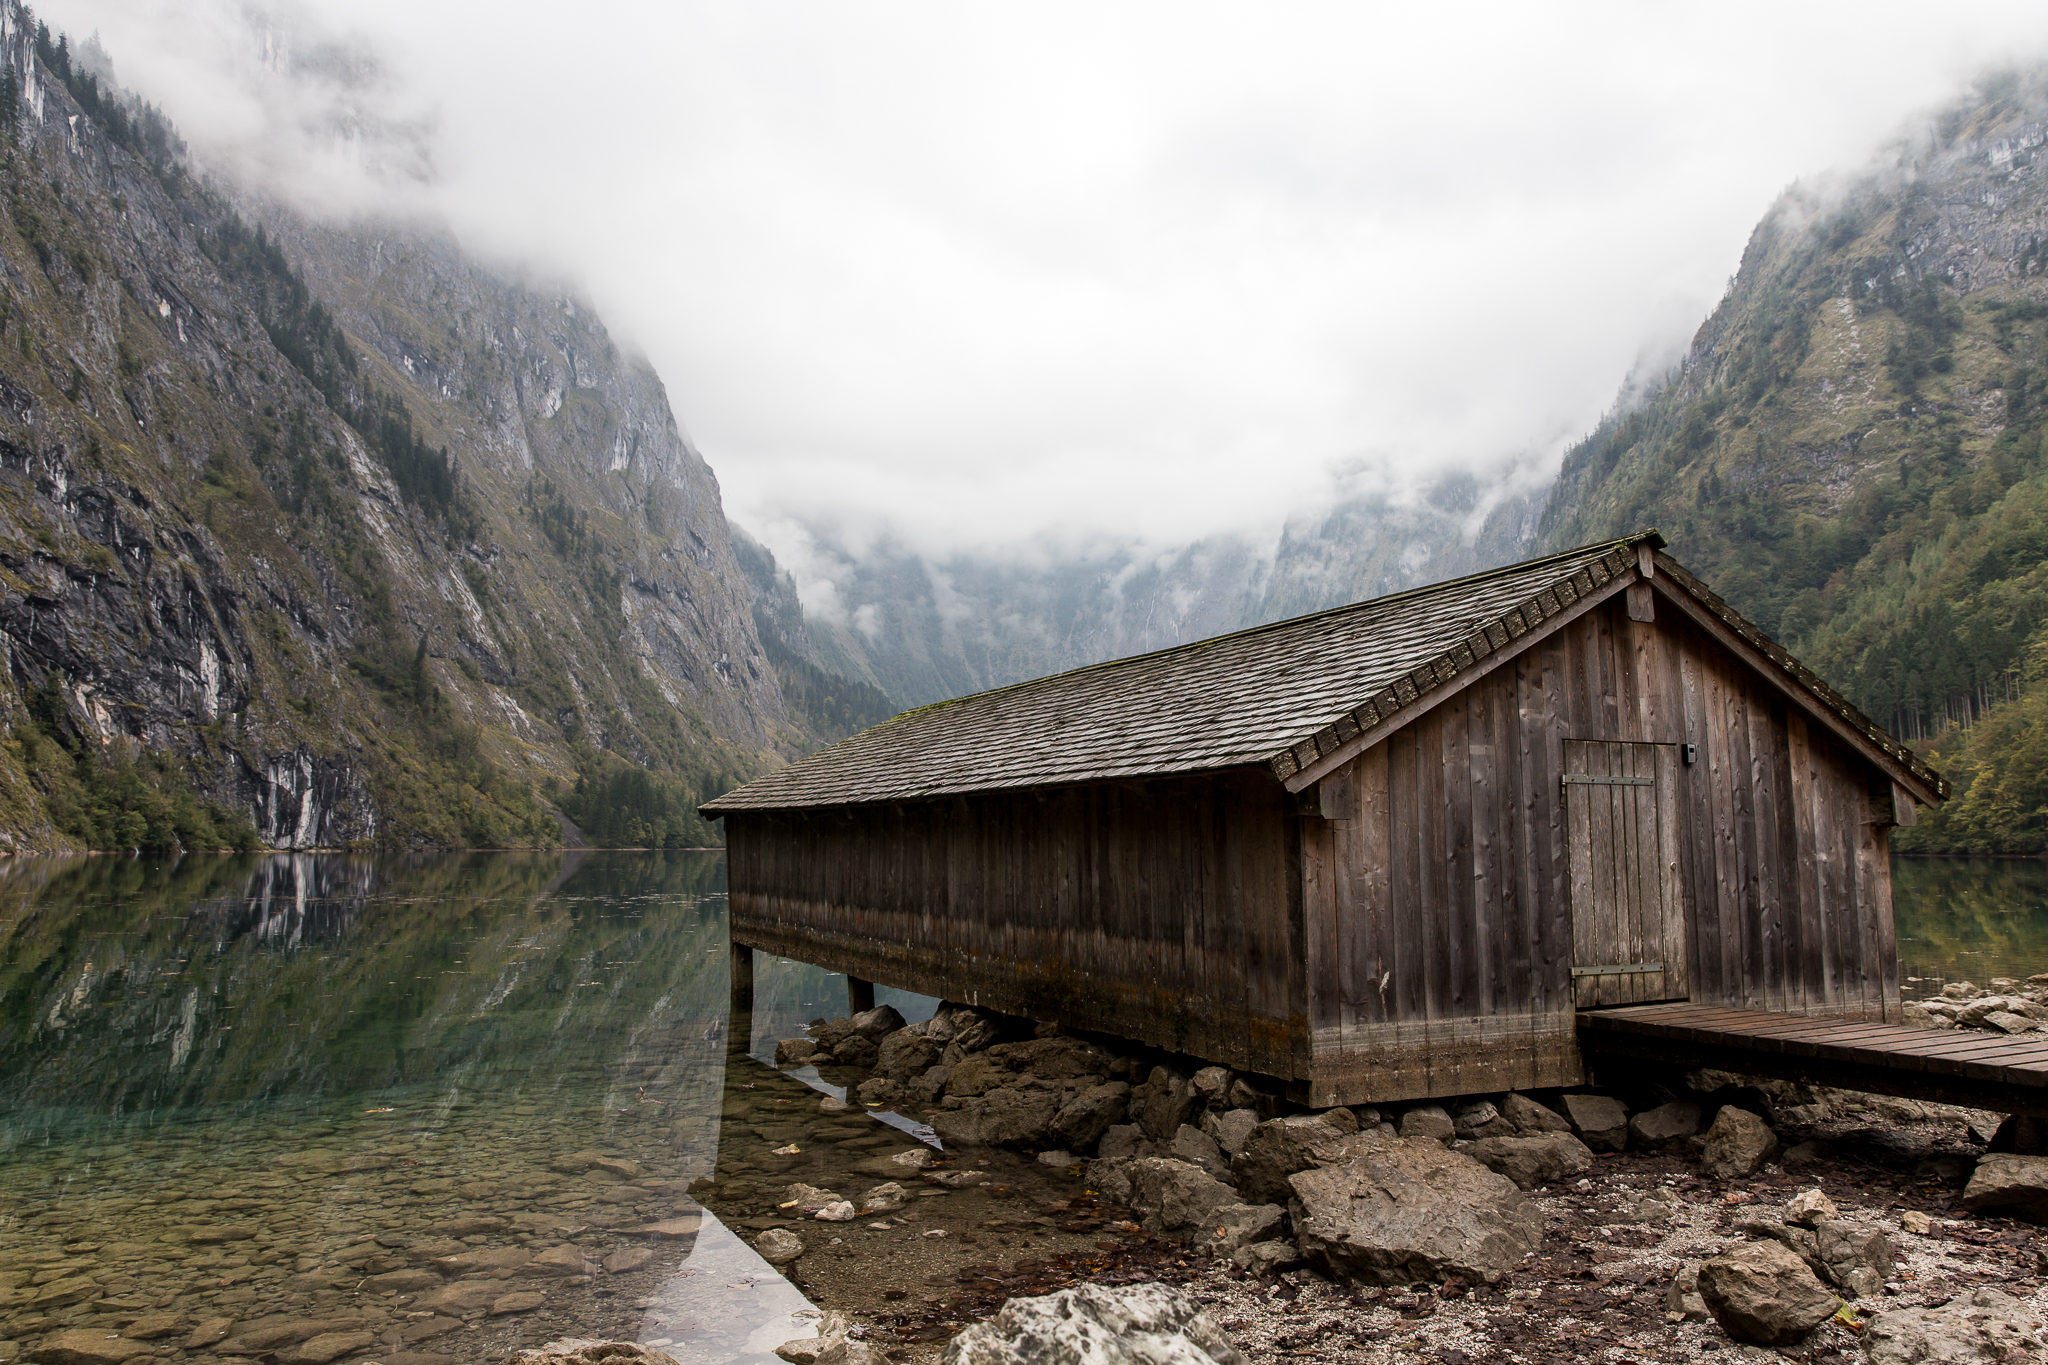 The most picturesque boathouse ever